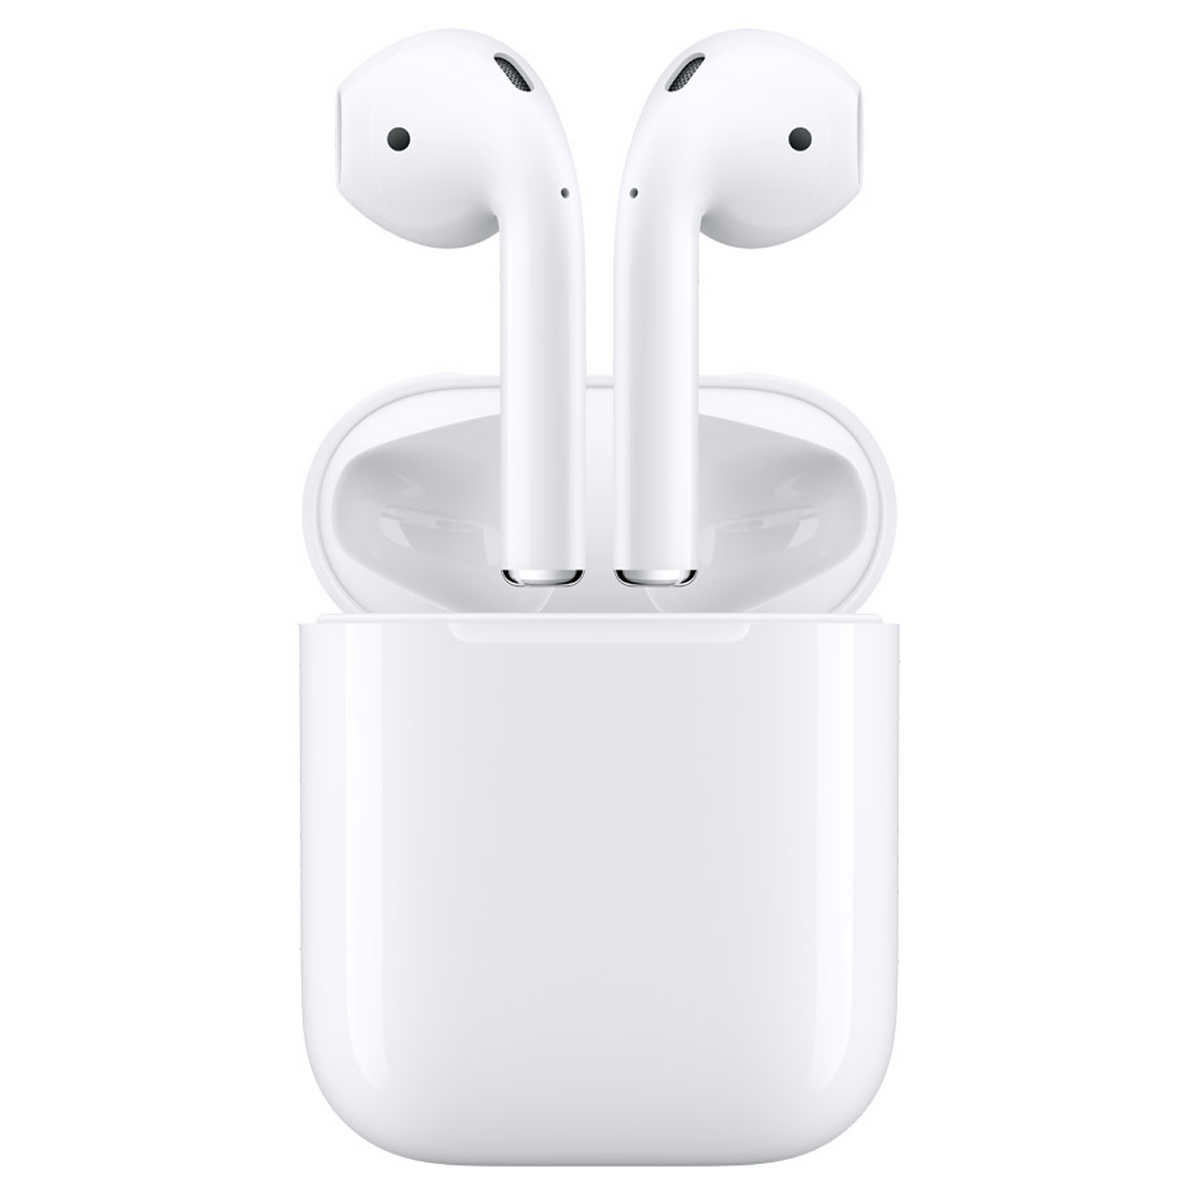 Apple Airpods Wireless Headphones With Charging Case Latest Model